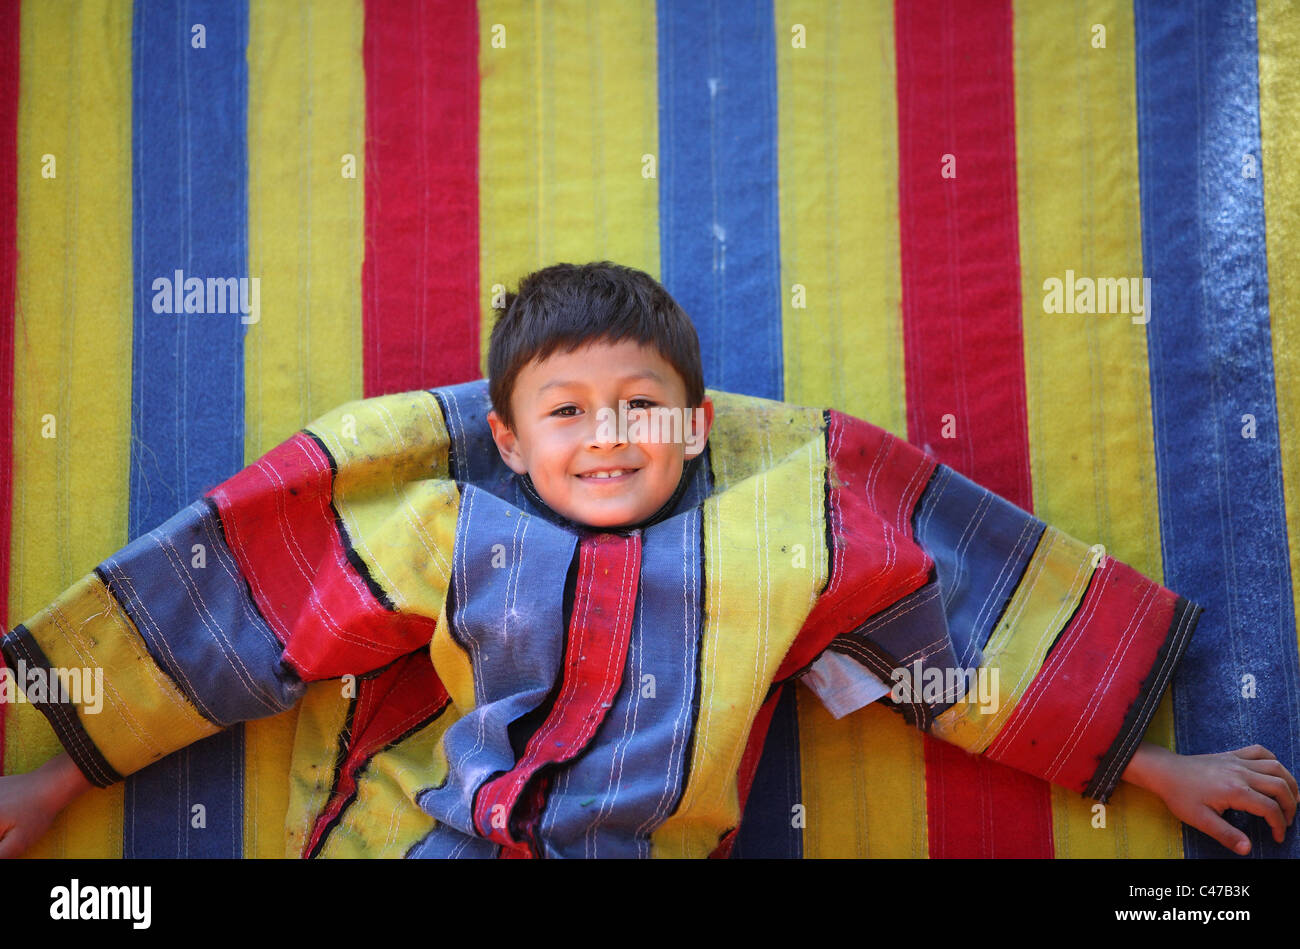 Young latino or Hispanic boy on velcro sticky wall Stock Photo